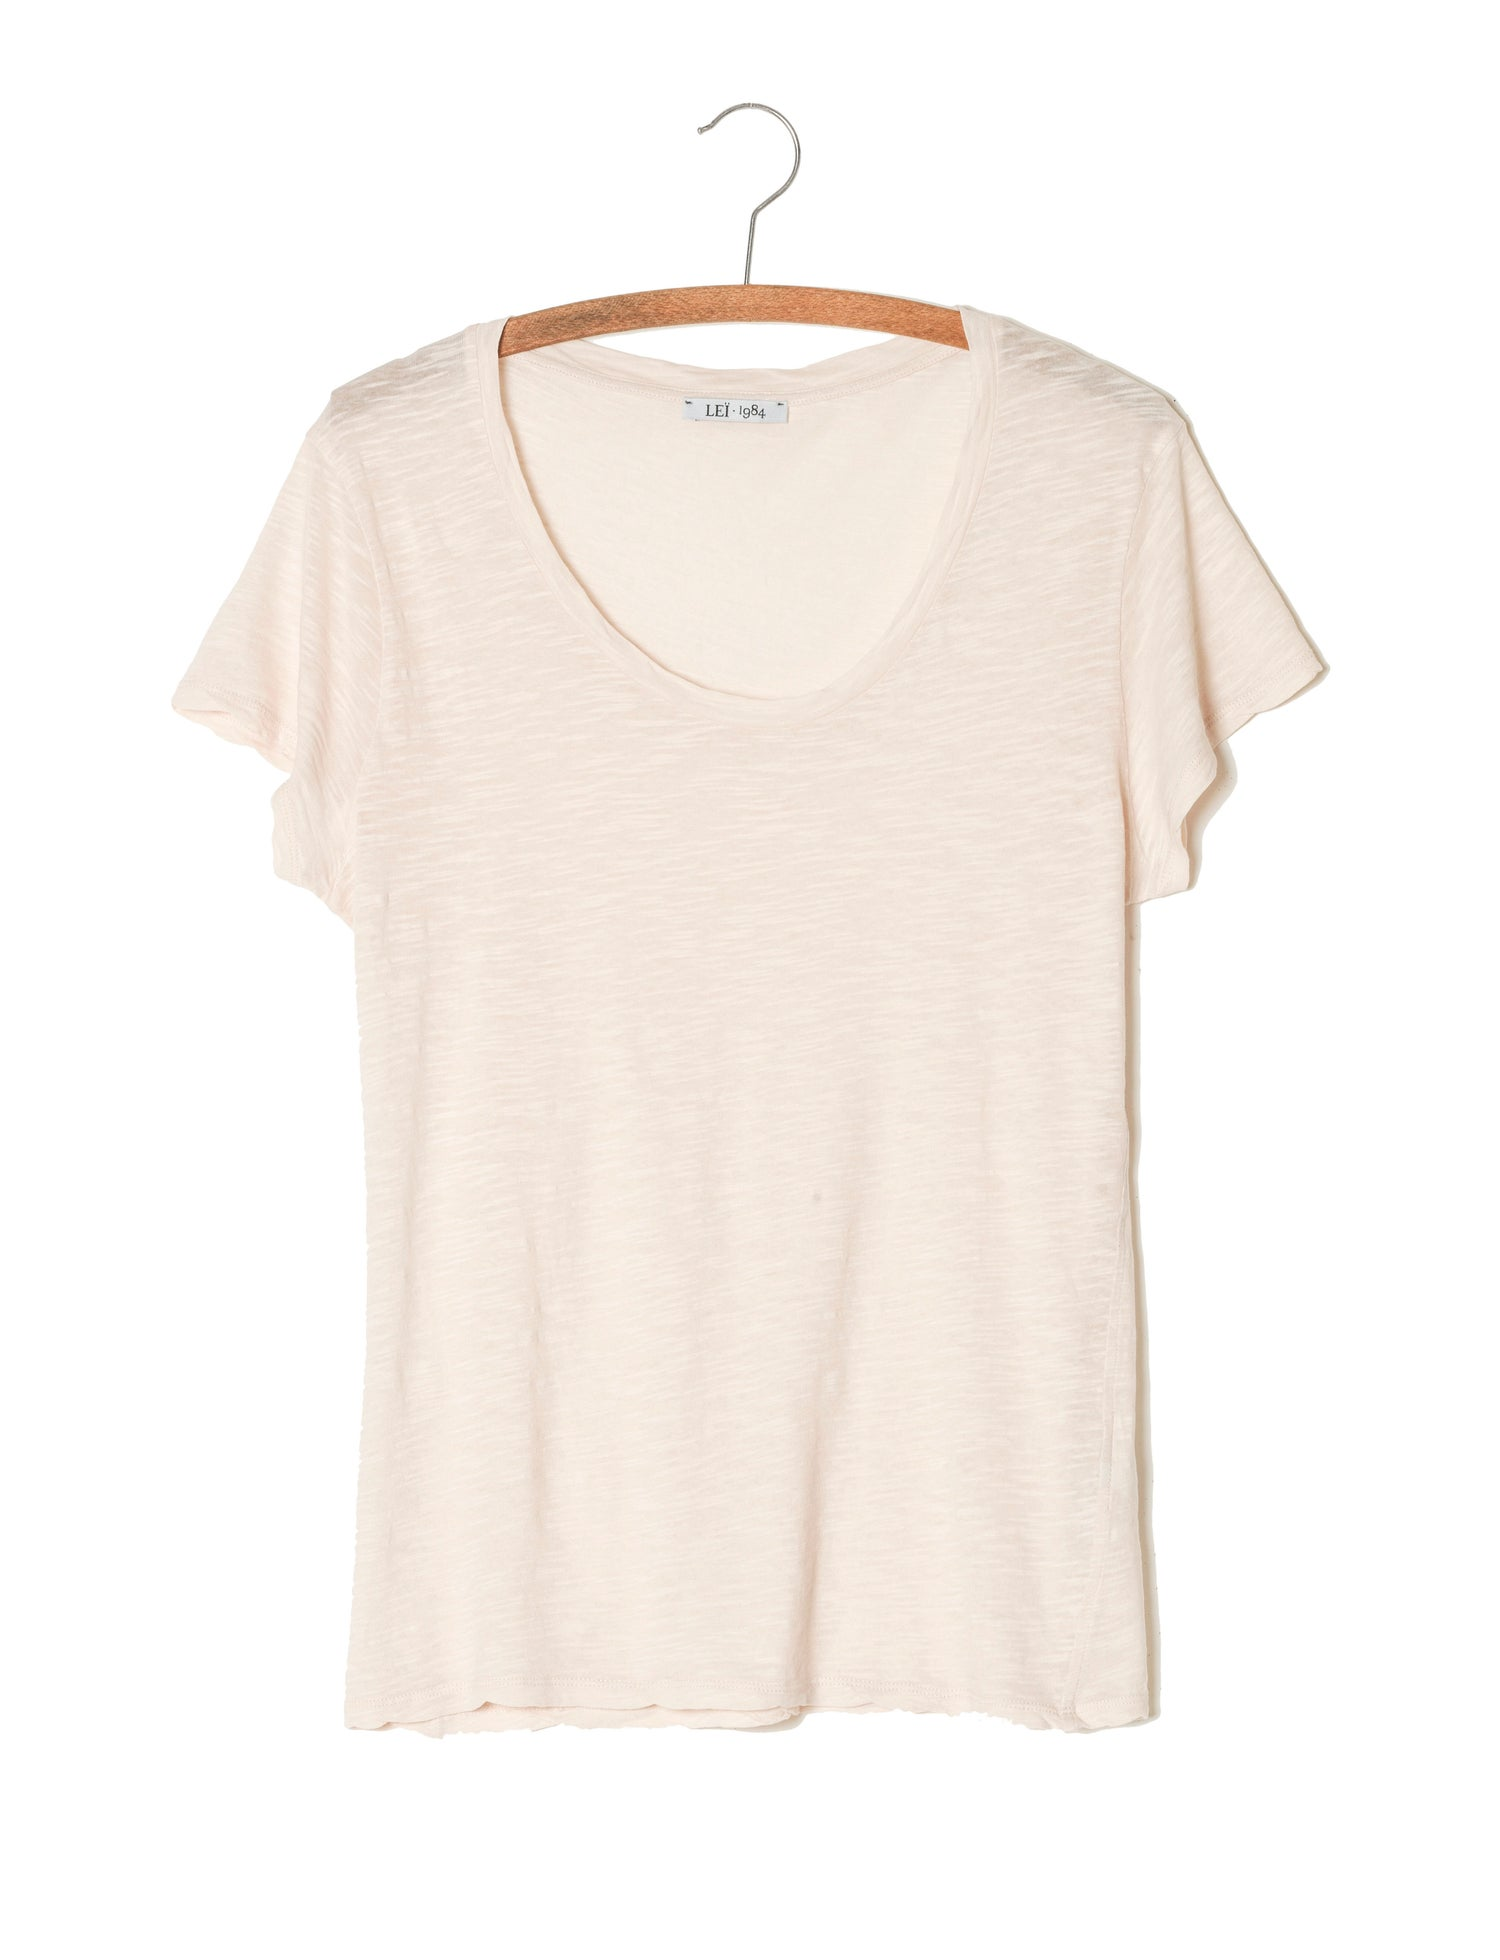 Image of Tee shirt flamé AMELIA coloris pastels